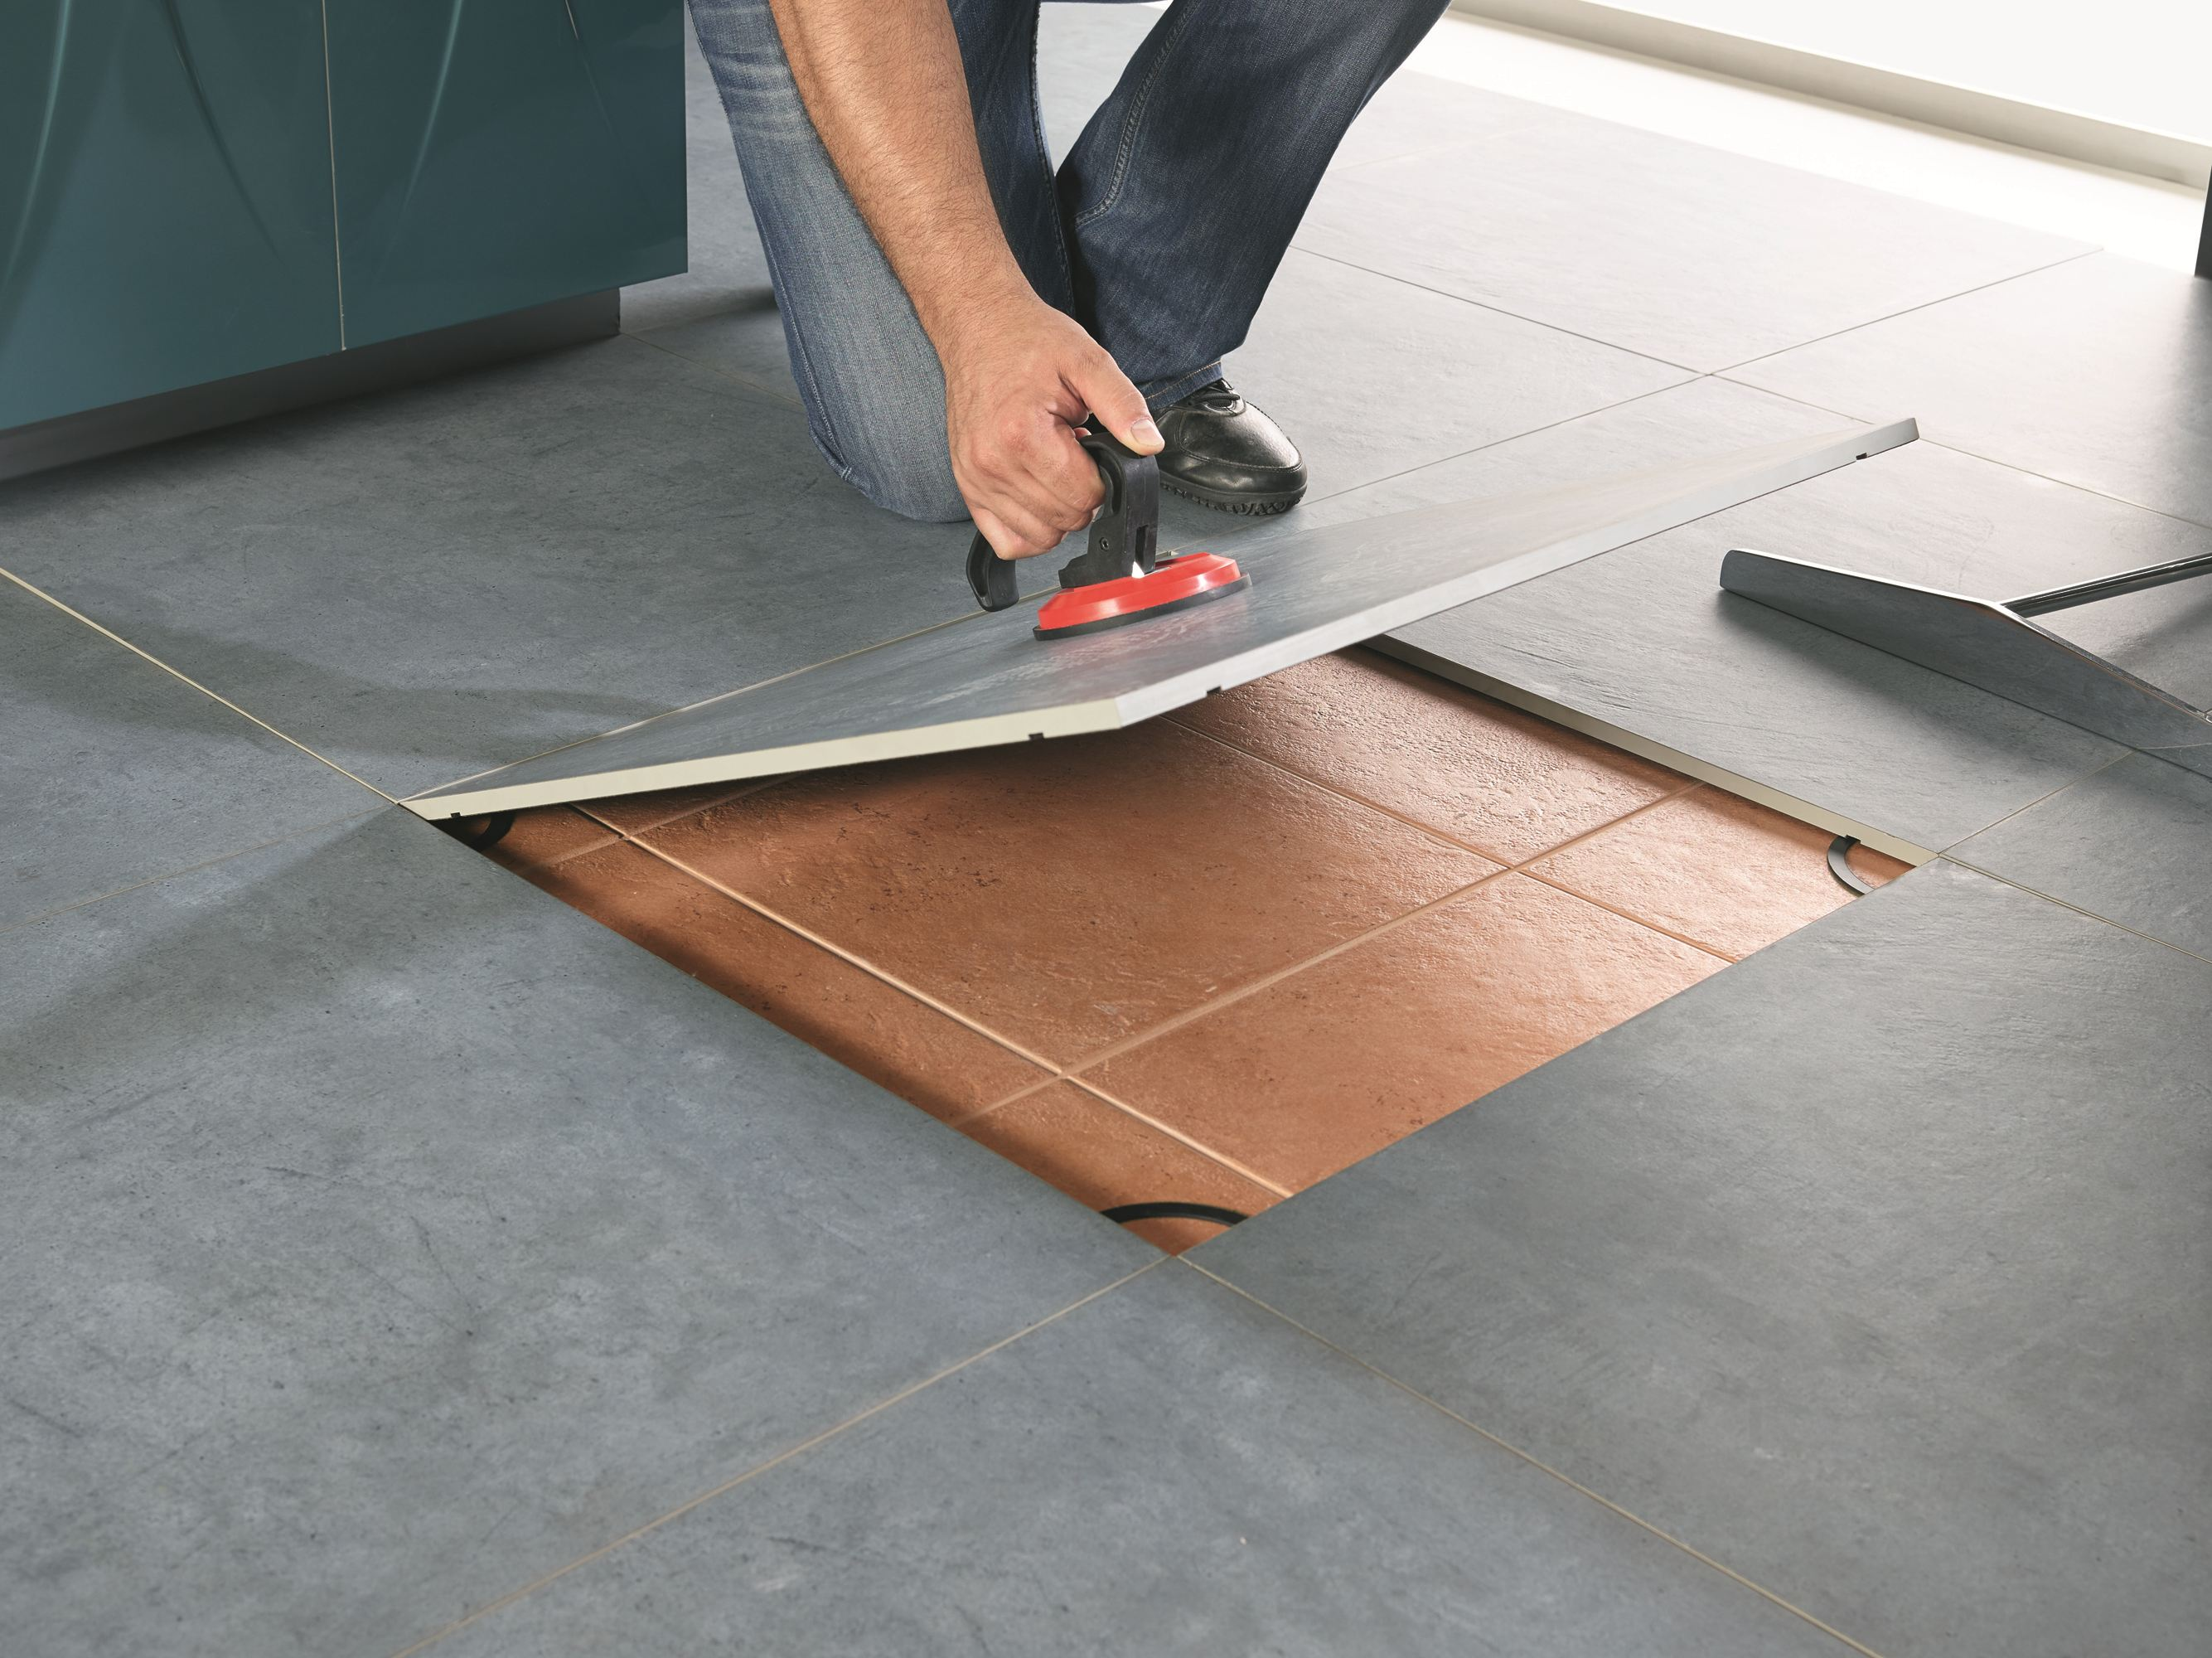 Carrelage adhesif sol for Revetement sol a poser sur carrelage